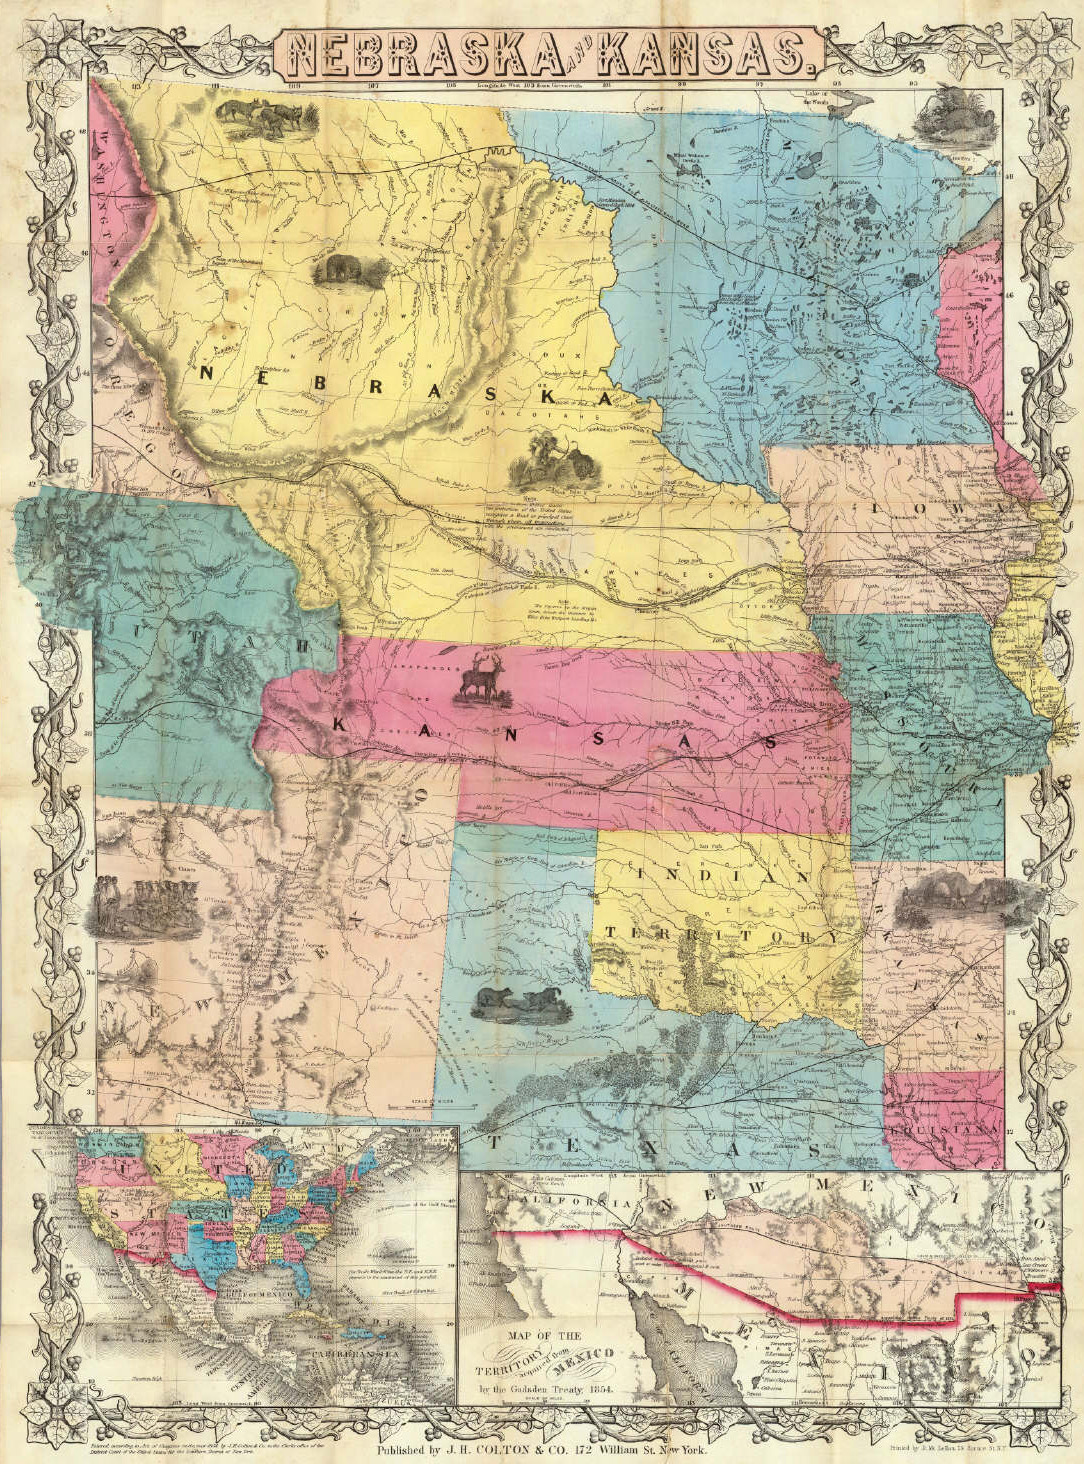 By This Act The Indian Territory Was Shrunk Down To Extend Between Texas And The 37th Parallel And The Area To The North Of That Was Divided Into Two